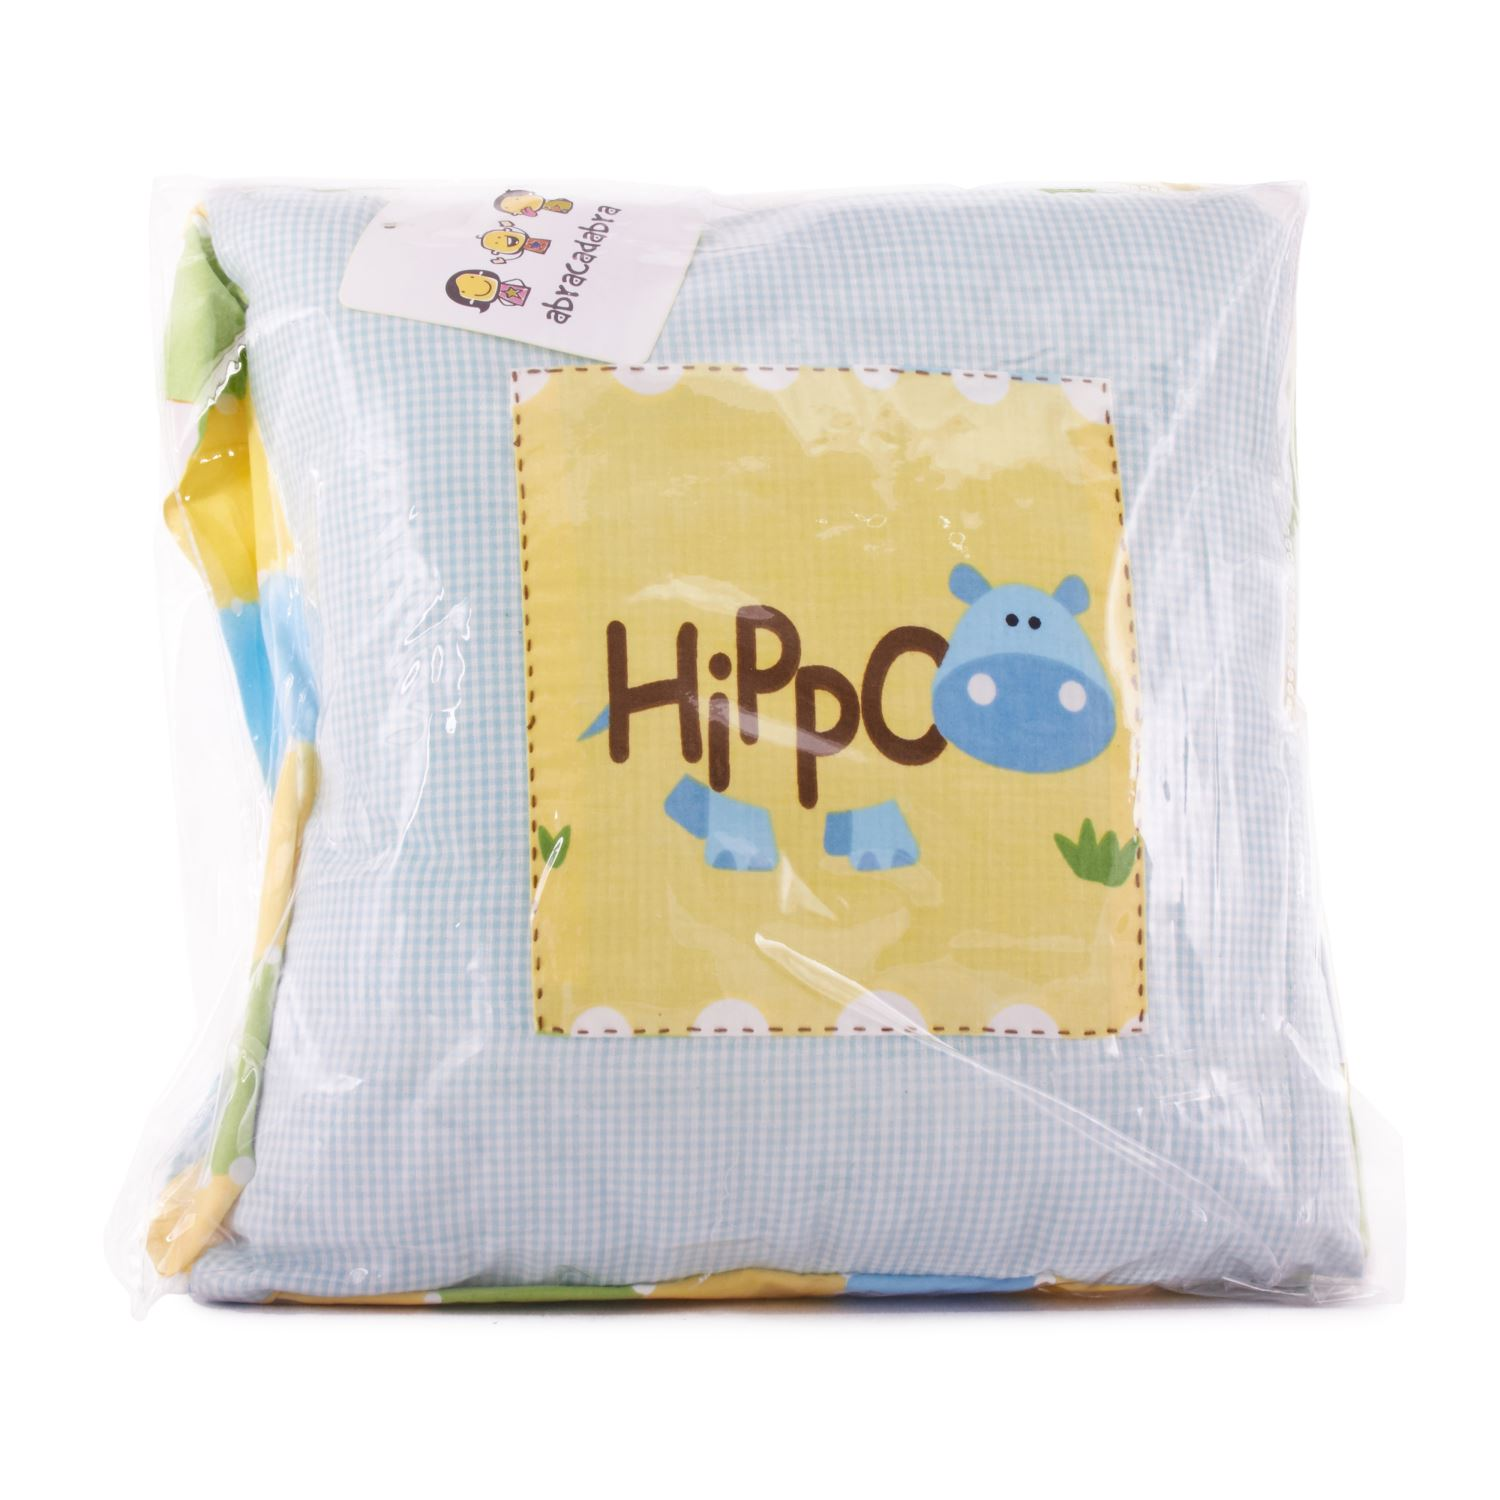 Abracadabra Filled Cushion Hippo